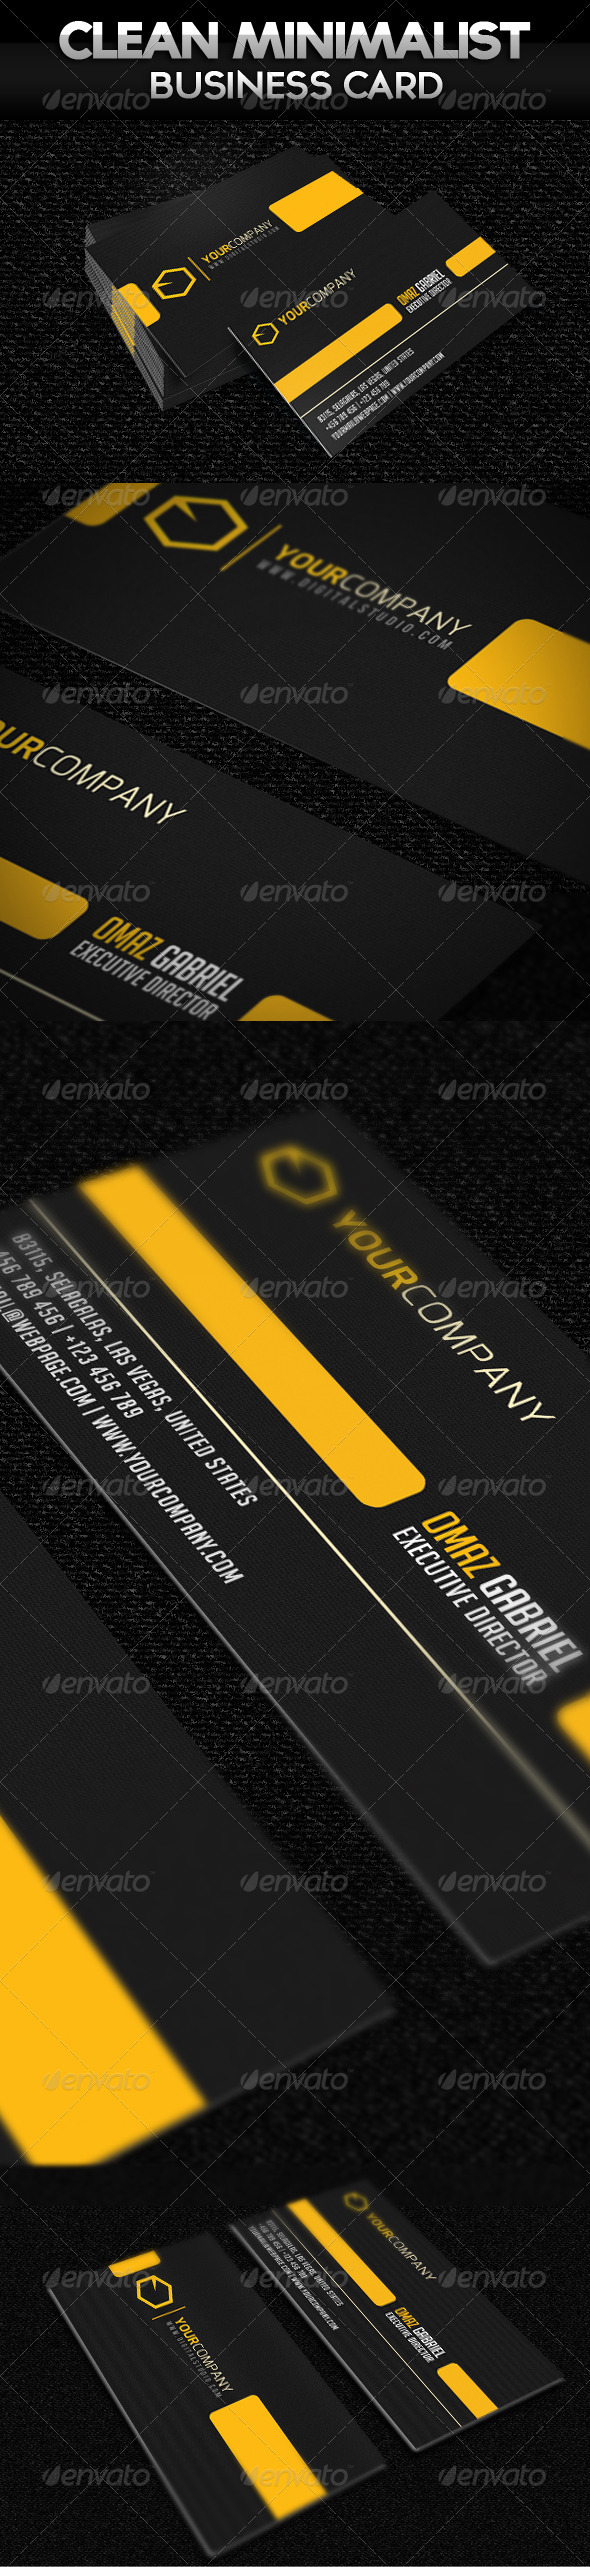 GraphicRiver Can Minimalist Business Card 2535556